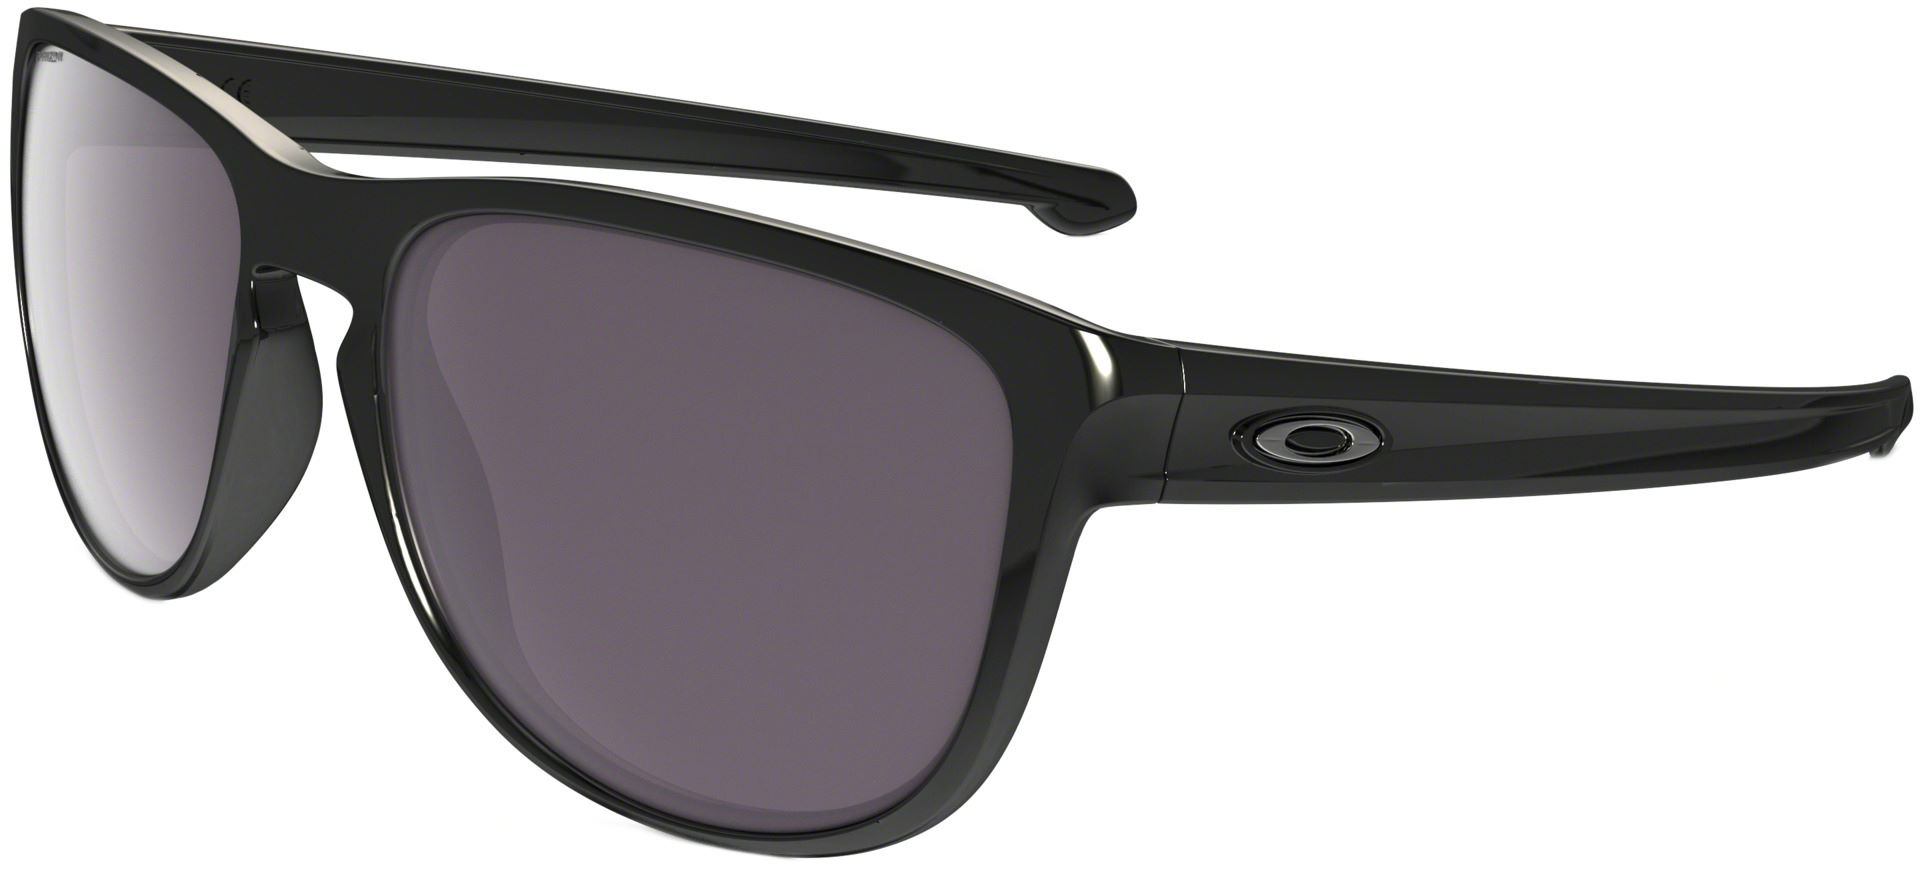 polarised sunglasses price  Wiggle